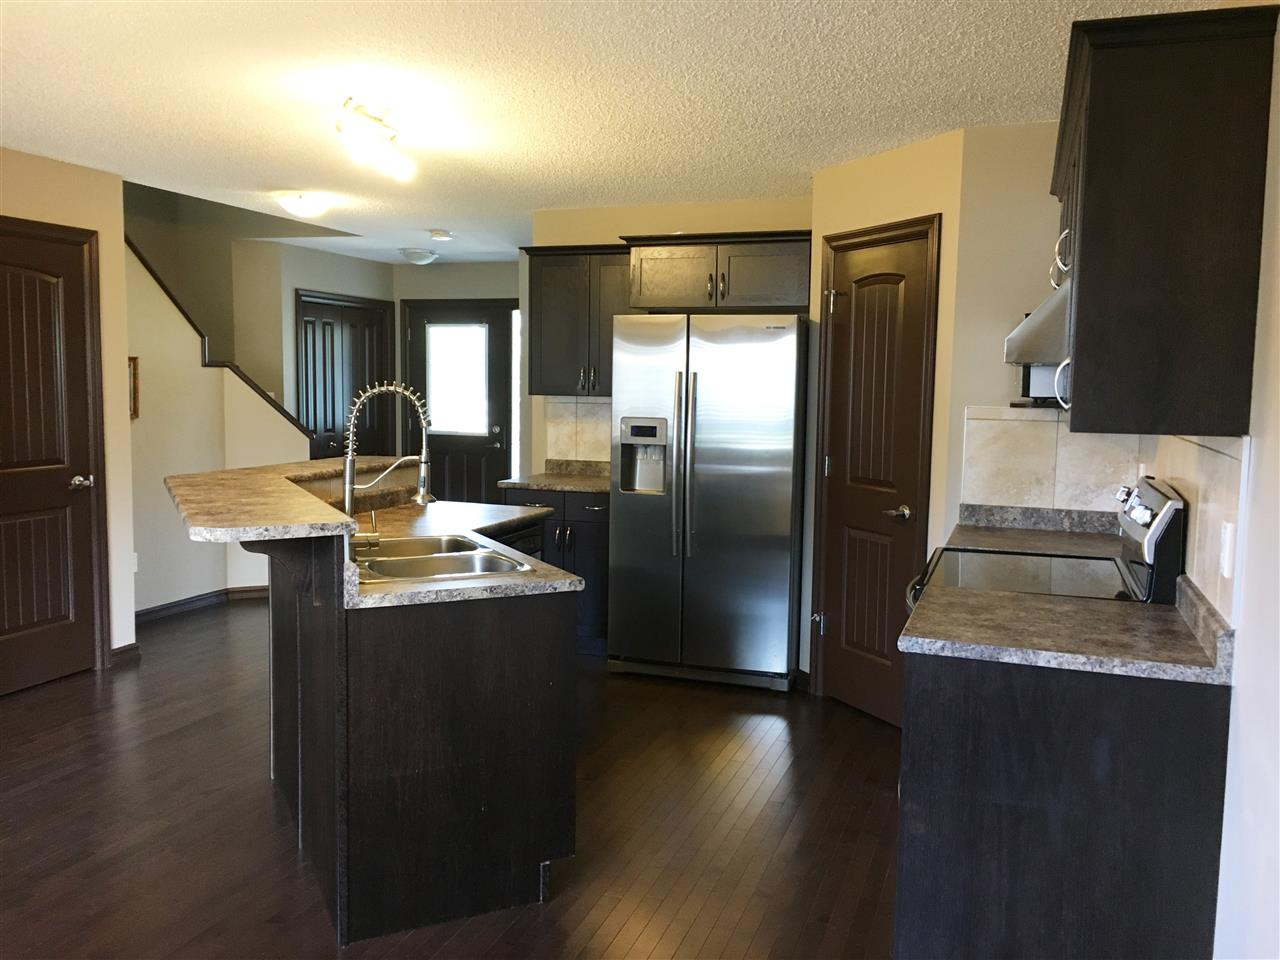 Photo of Kitchen showing Centre Island,Dble Sinks/Uupgraded Tap;SS Fridge(Water/Ice Dispenser),Front Entrance,Staircase,Door to Lower Level as Viewed from the Dining Area.Note the Gleaming Hardwood Floors/Cabinets & Open Floor Plan.Such aDelightful Home!